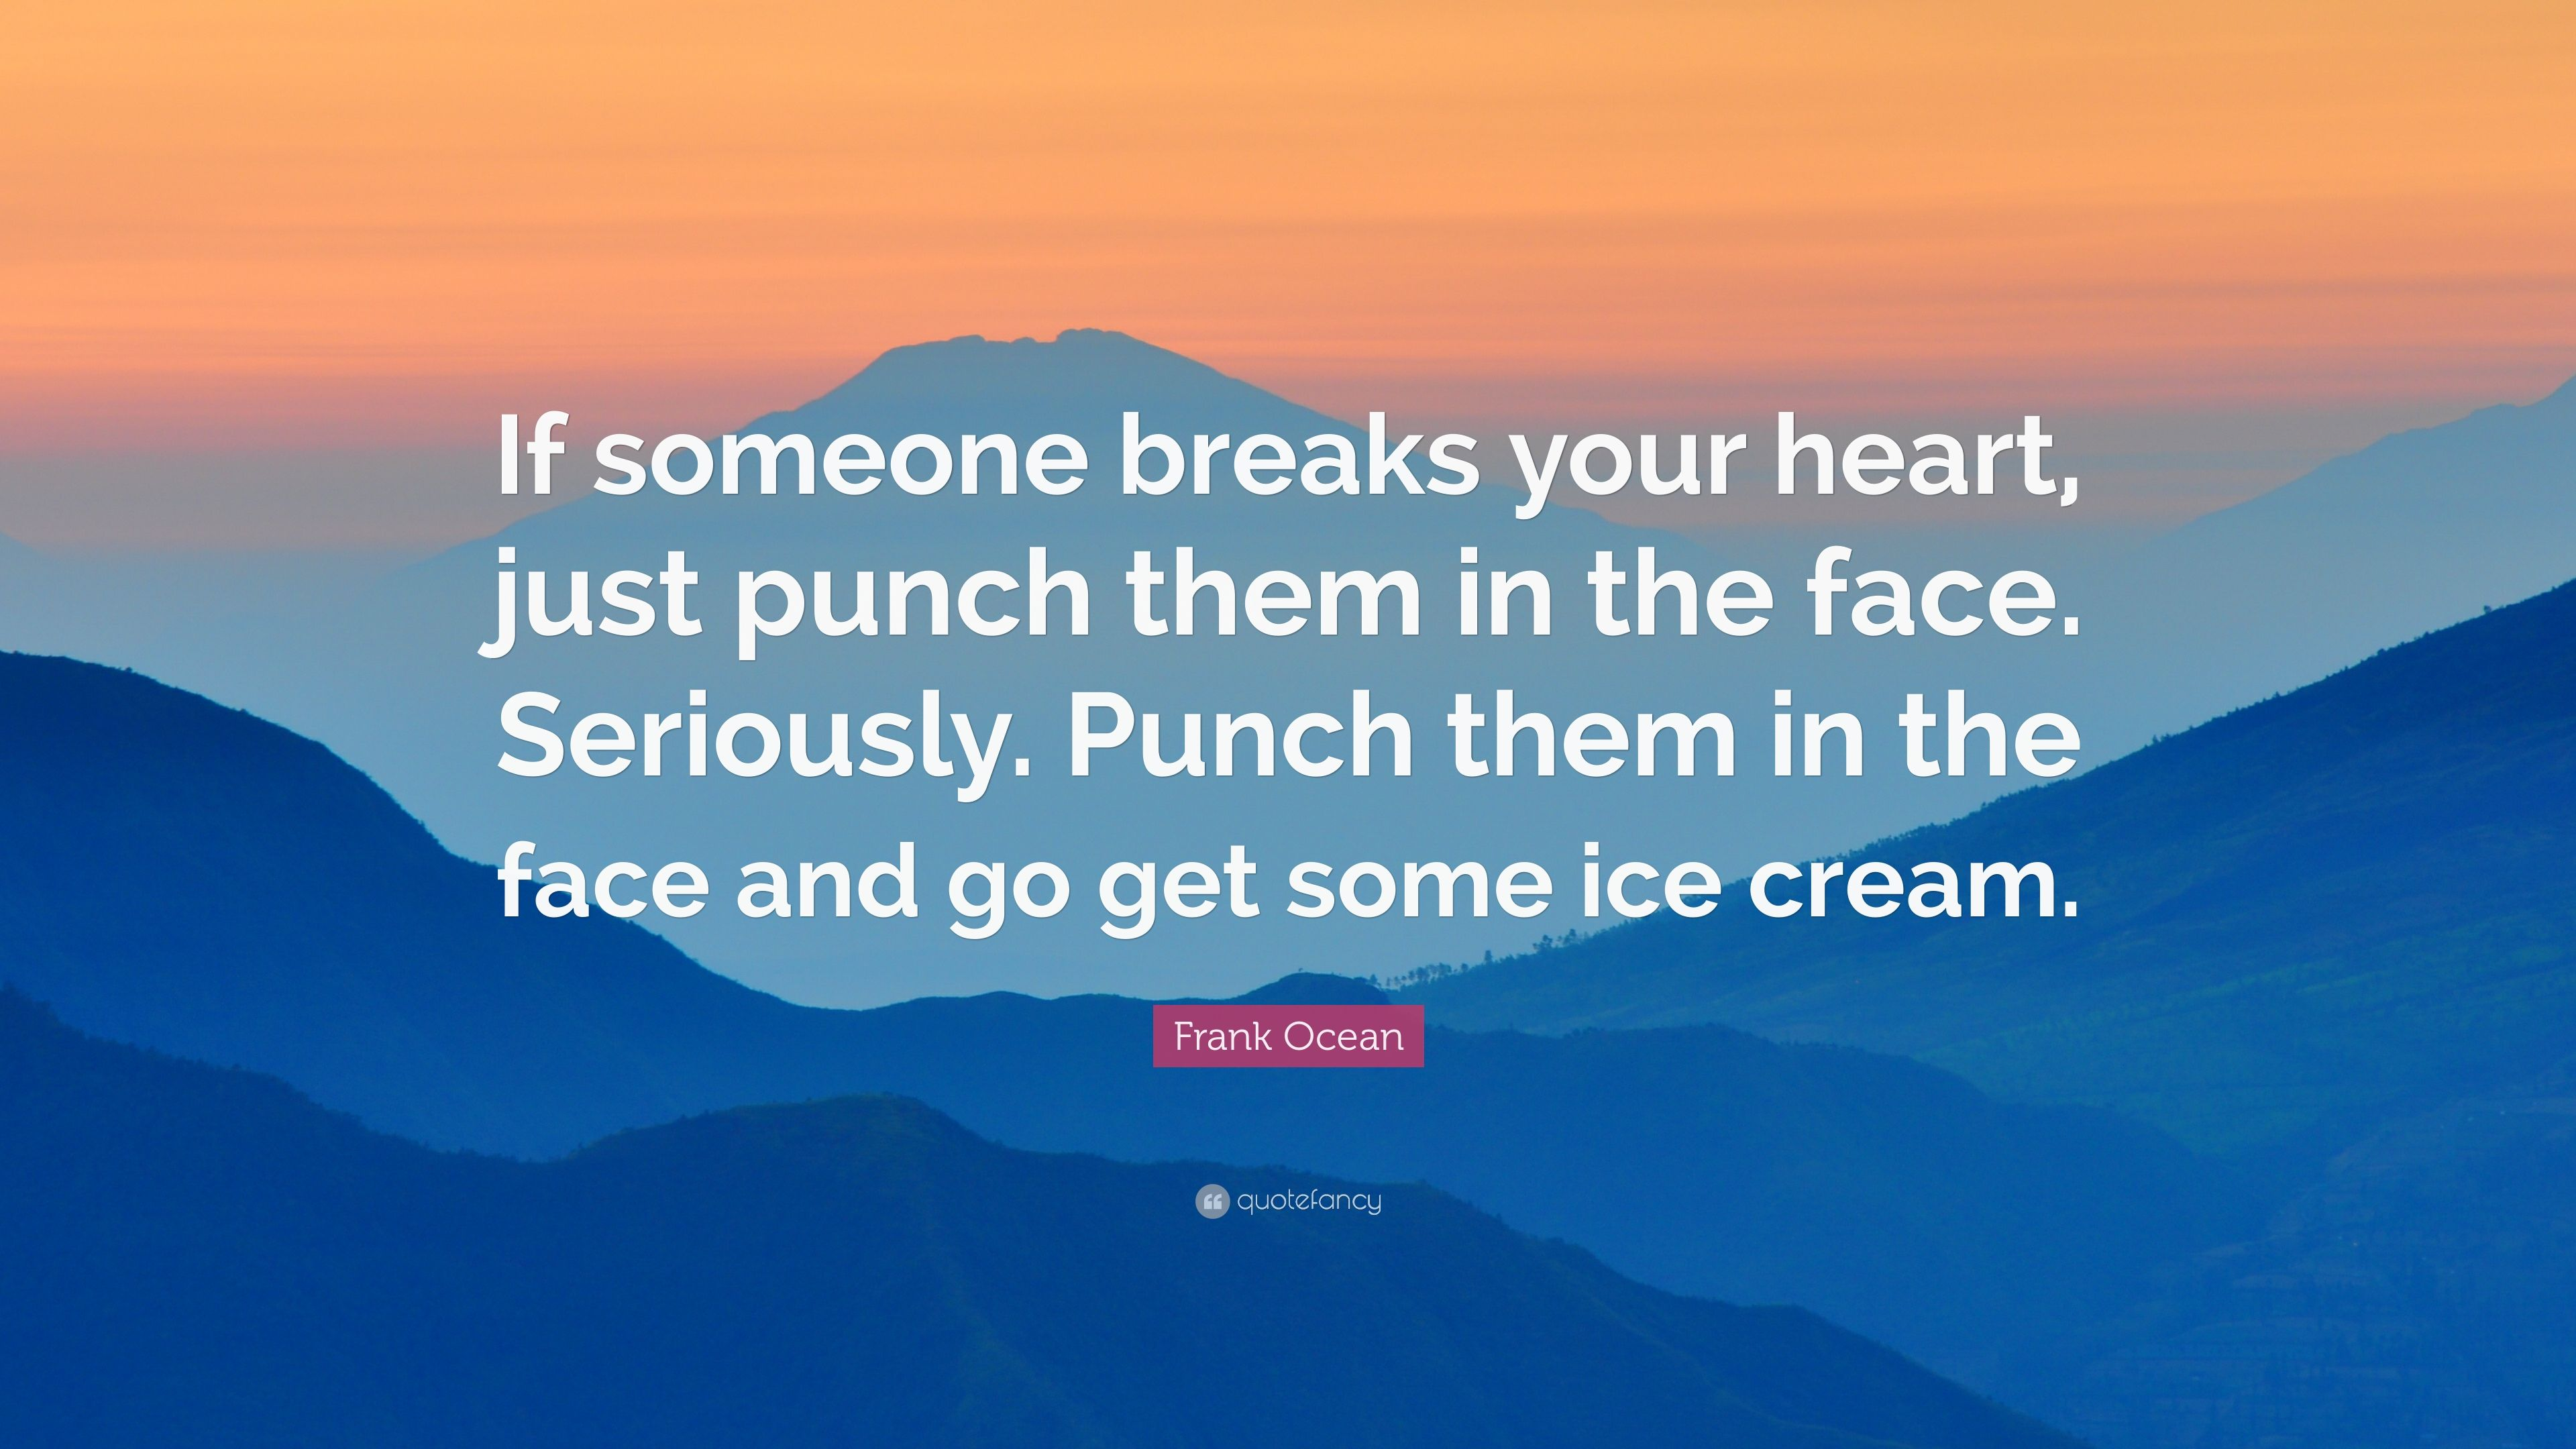 Frank Ocean Quote If Someone Breaks Your Heart Just Punch Them In